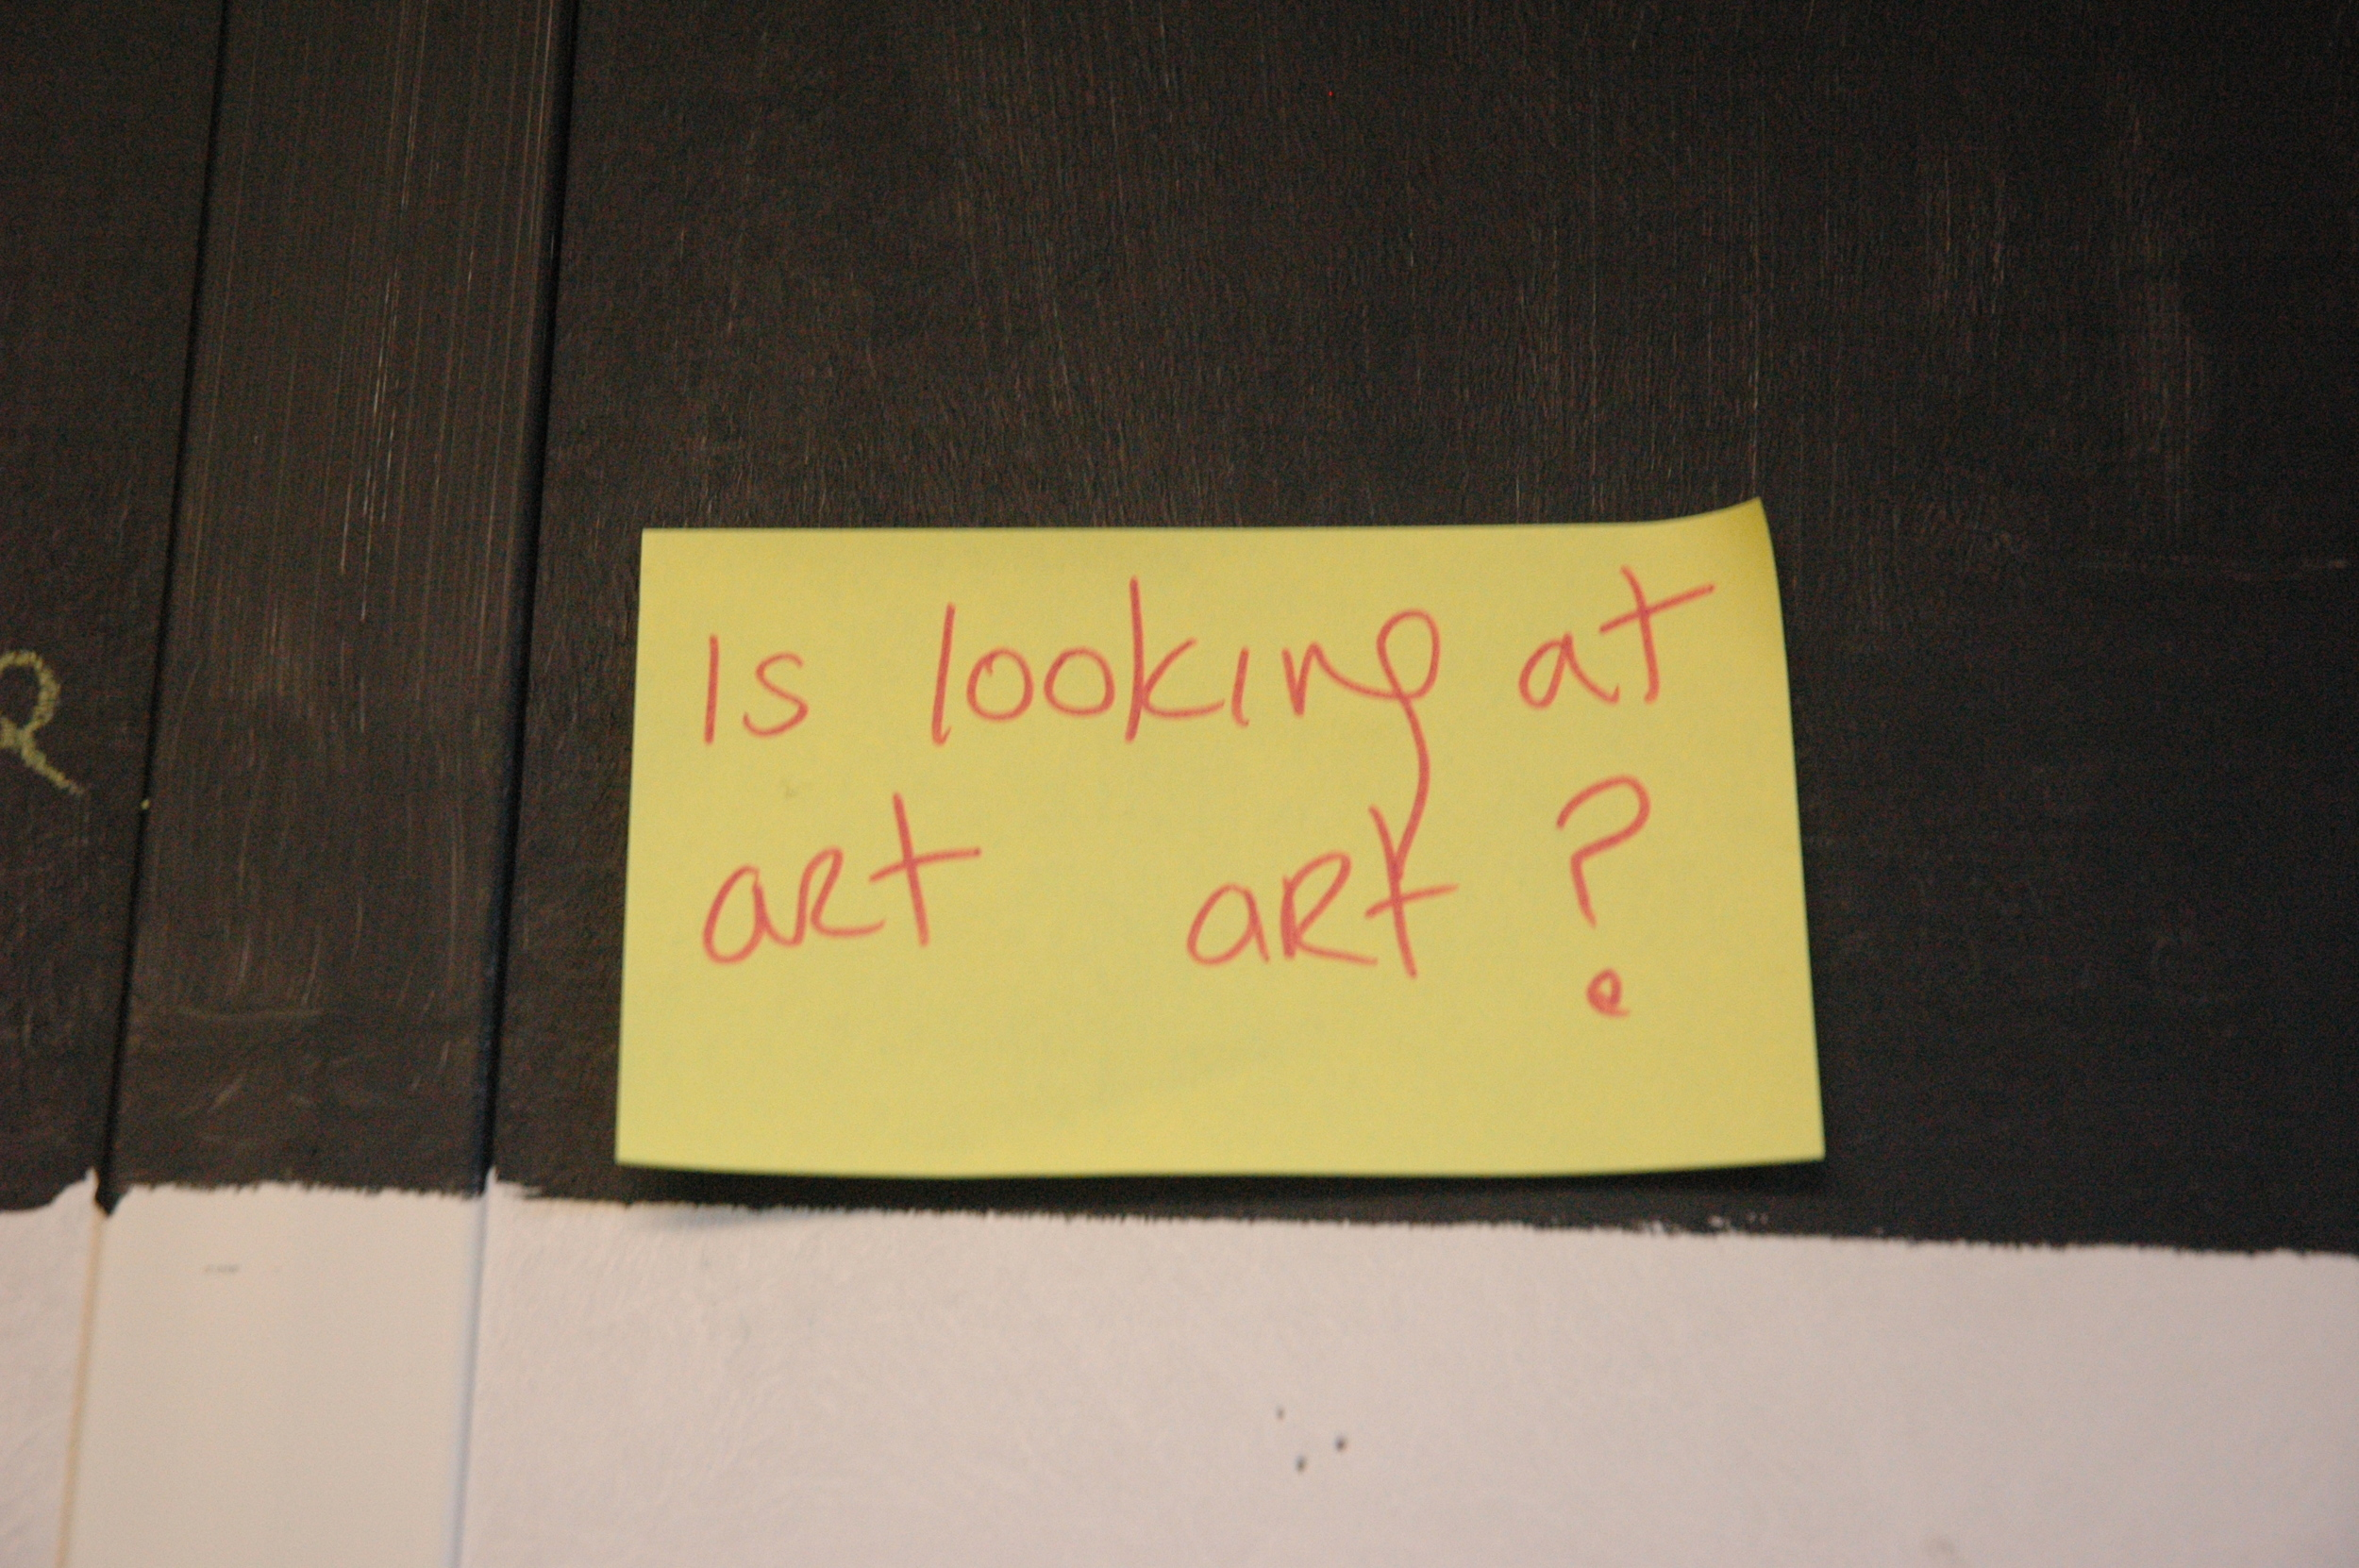 Interesting questions arose out of lively discussions around art and artworks.